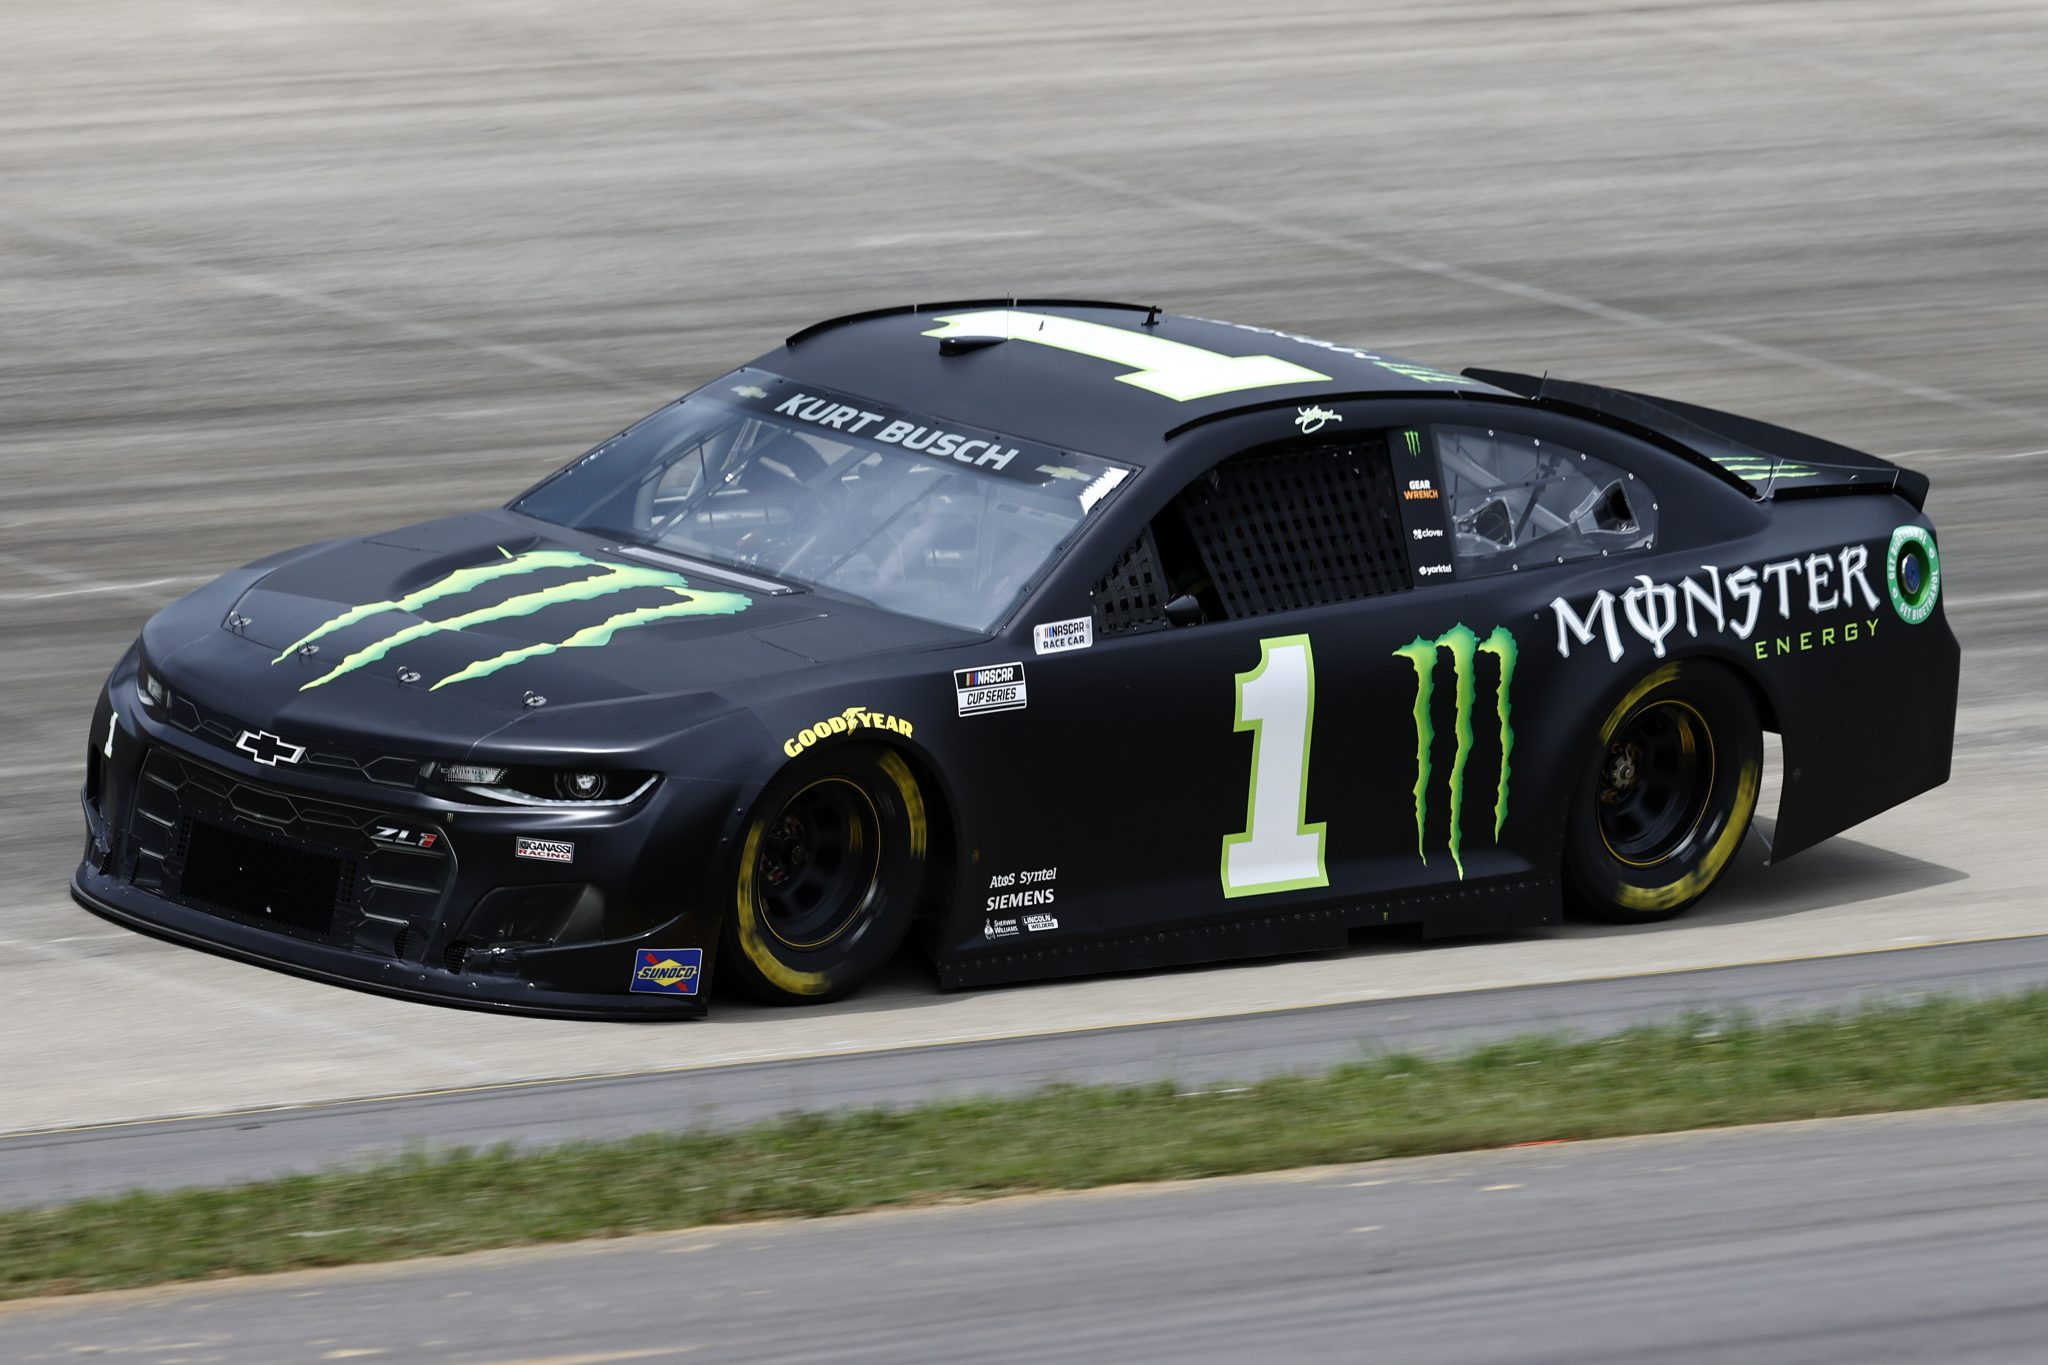 LEBANON, TENNESSEE - JUNE 19: Kurt Busch, driver of the #1 Monster Energy Chevrolet, drives during practice for the NASCAR Cup Series Ally 400 at Nashville Superspeedway on June 19, 2021 in Lebanon, Tennessee. (Photo by Jared C. Tilton/Getty Images) | Getty Images